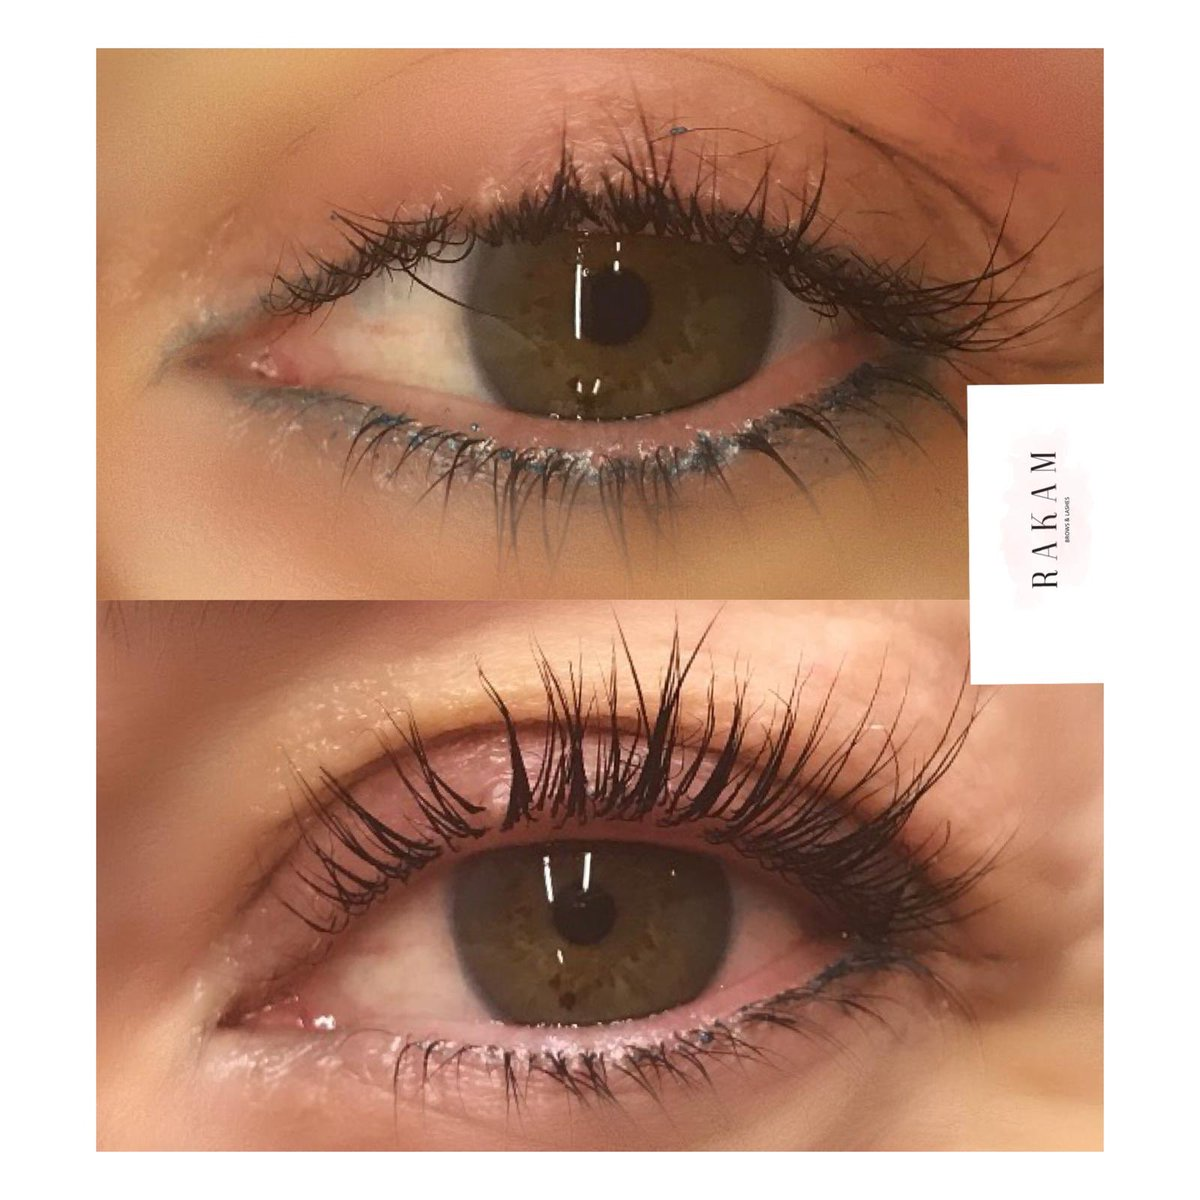 8ba412c286e R A K A M Brows & Lashes - London on Twitter: